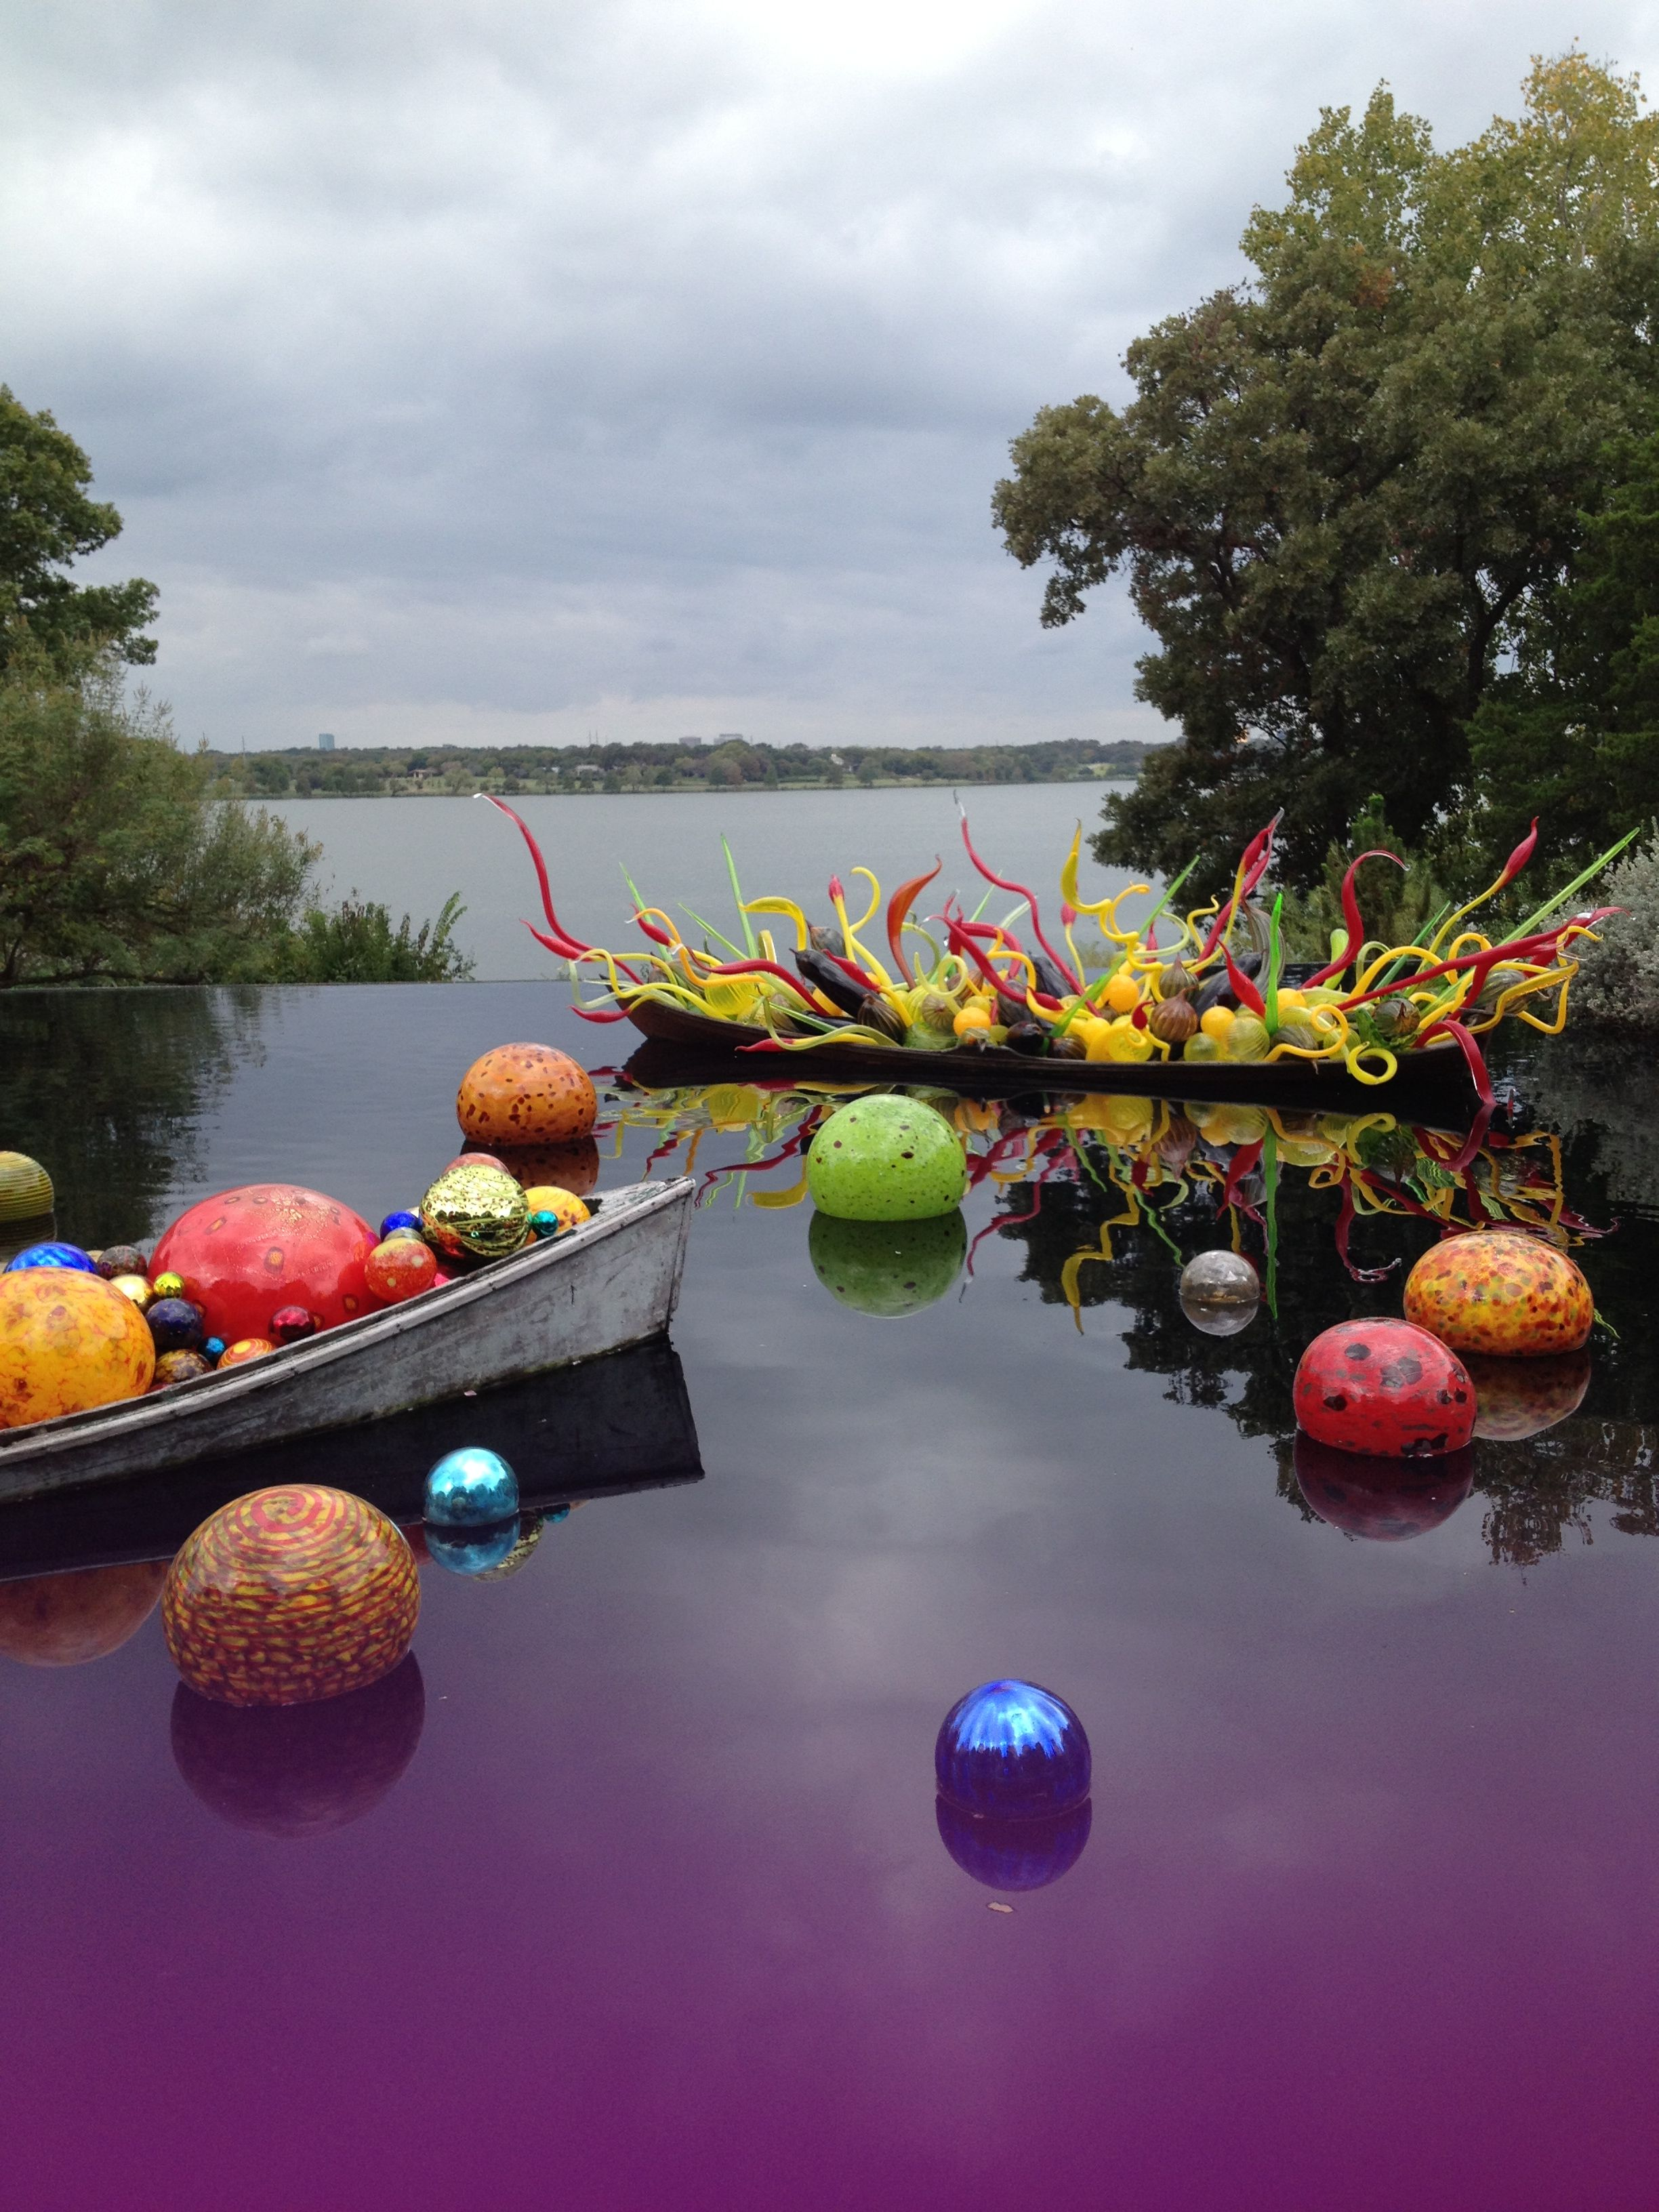 Chihuly love seeing his work in landscapes chihuly